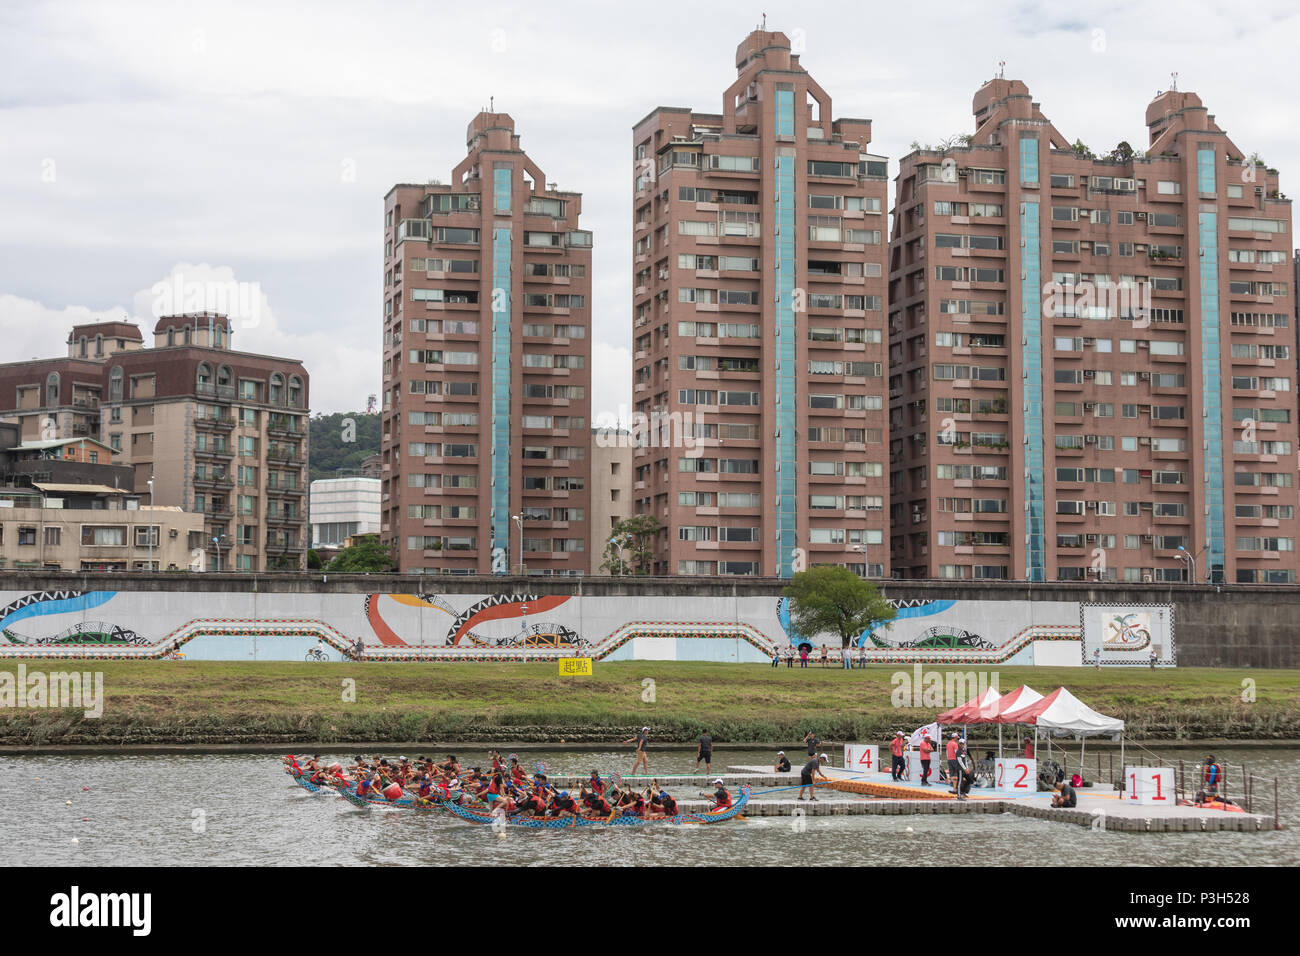 Taipei, Taiwan, 18 June: Dragon boats teams pass participate in the